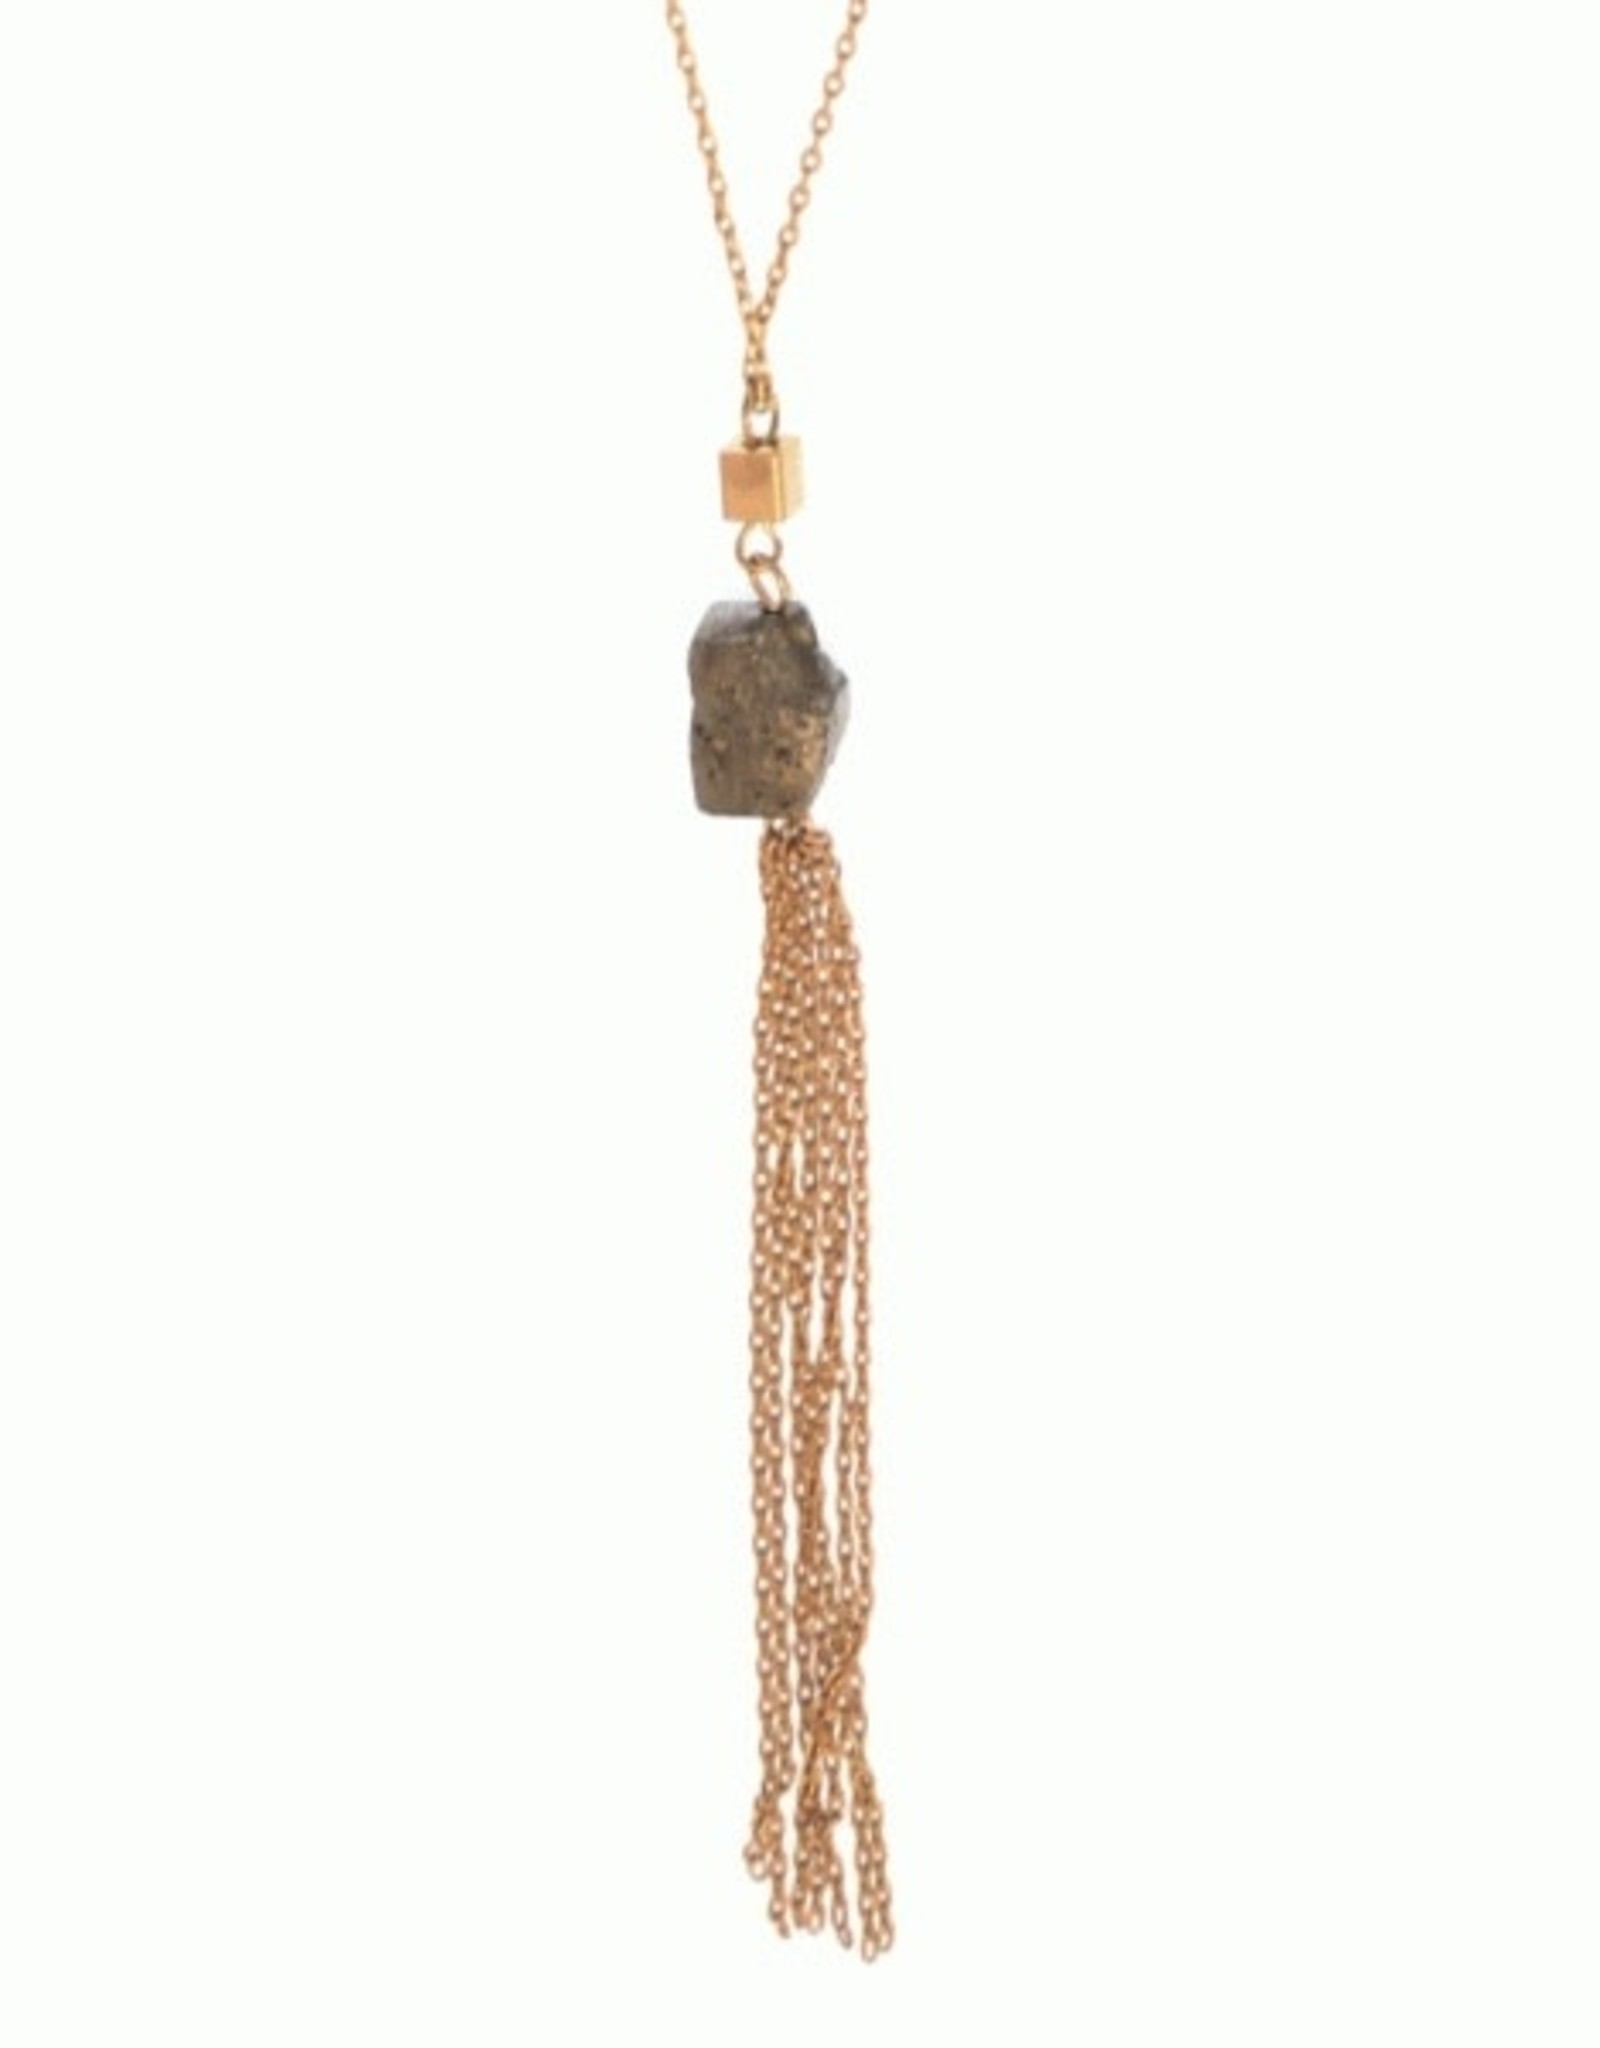 Worn Gold & Stone Tassel Necklace